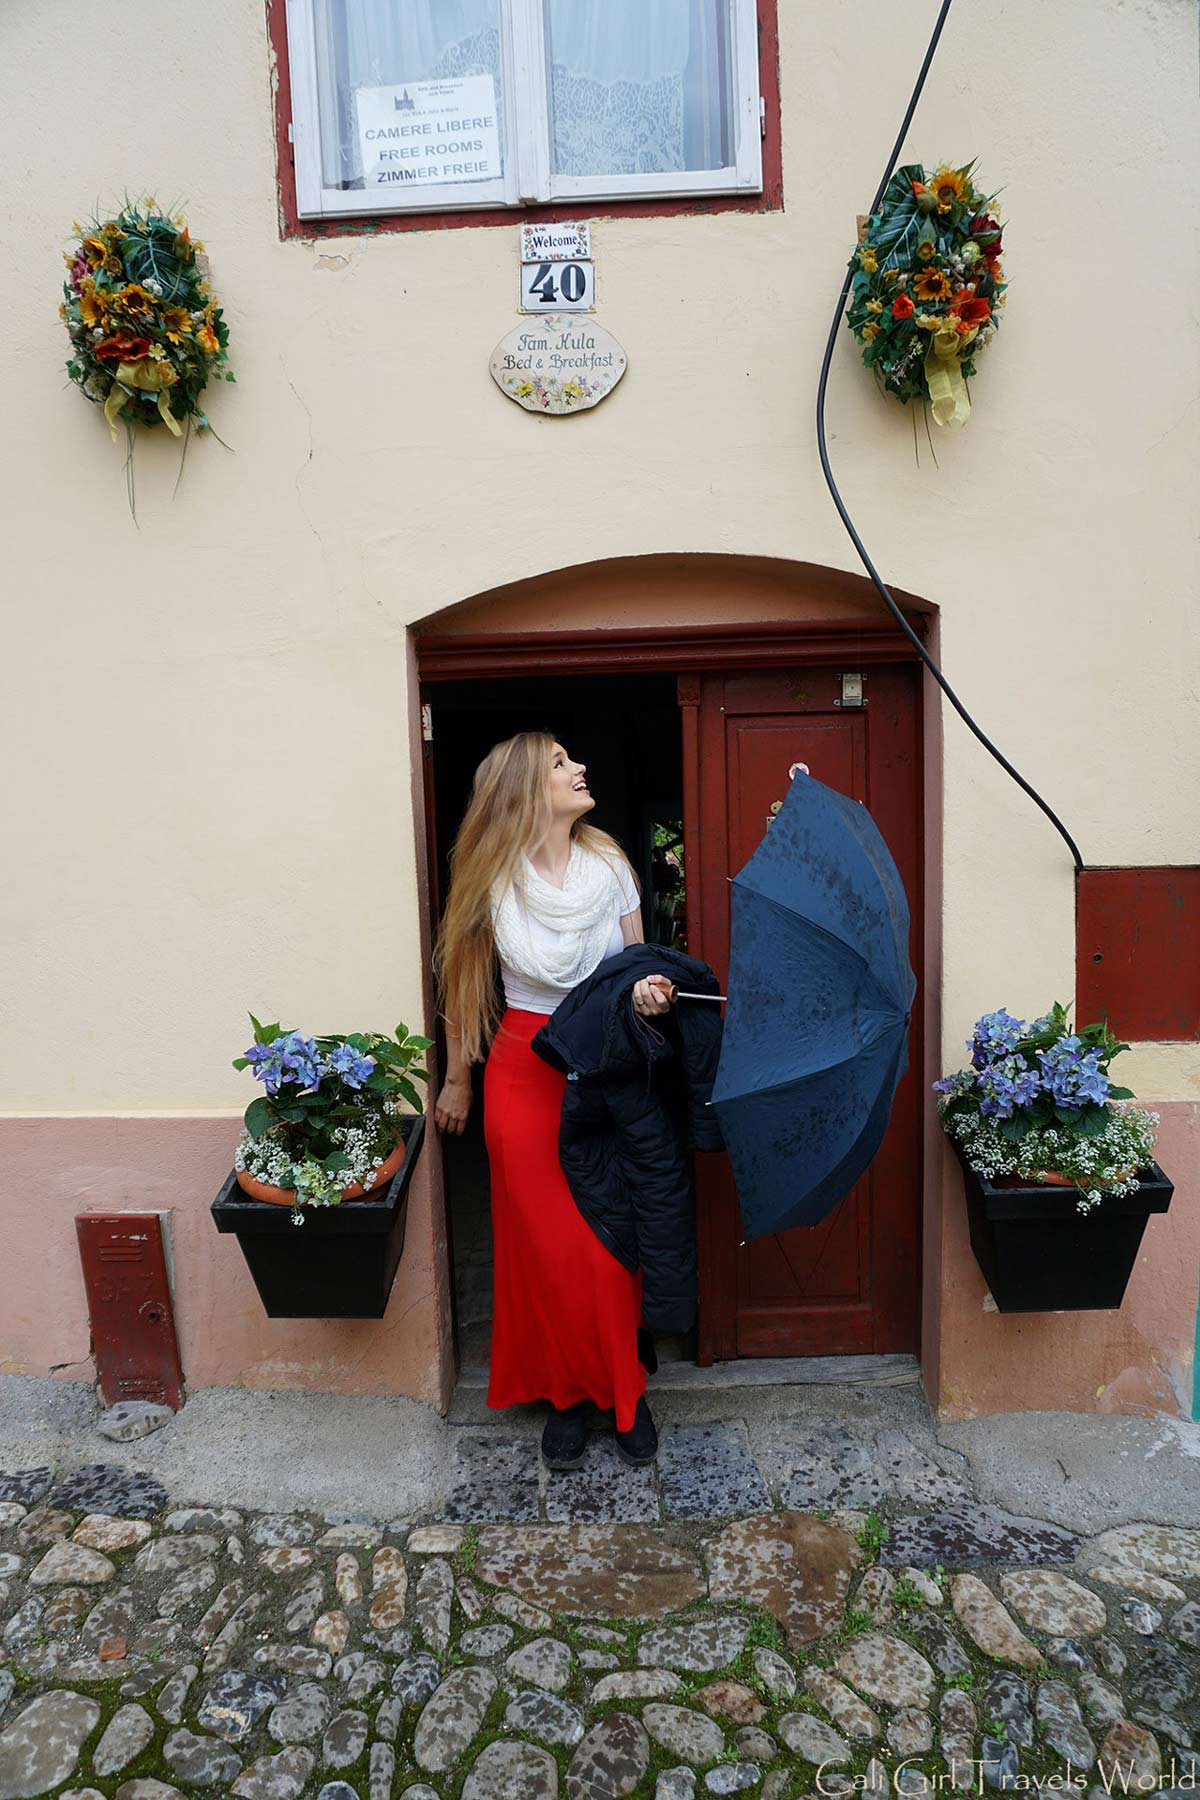 A female traveler in a tiny doorway of Sighisoara, Romania holding an umbrella.